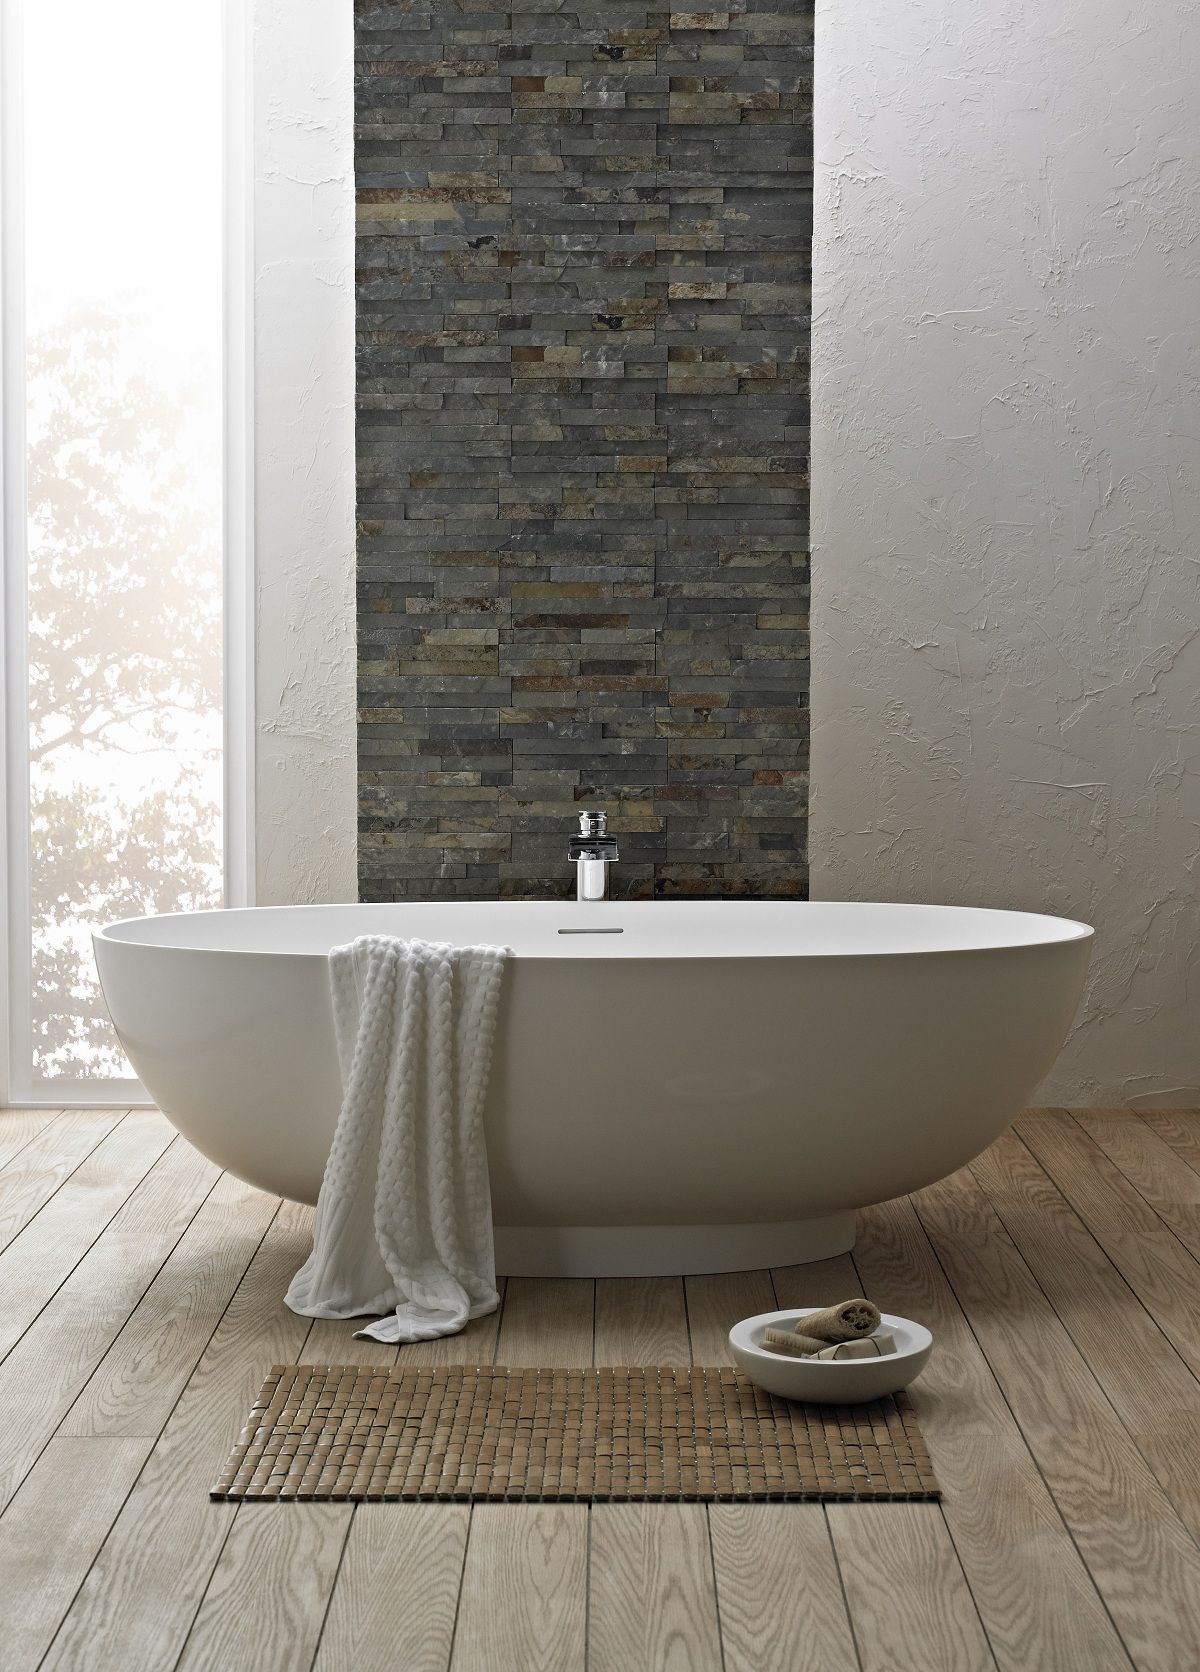 Stacked stone accent behind master bath tub  Could be done with drop in tub. Baignoire moderne et de style classique  40 id es inspirantes